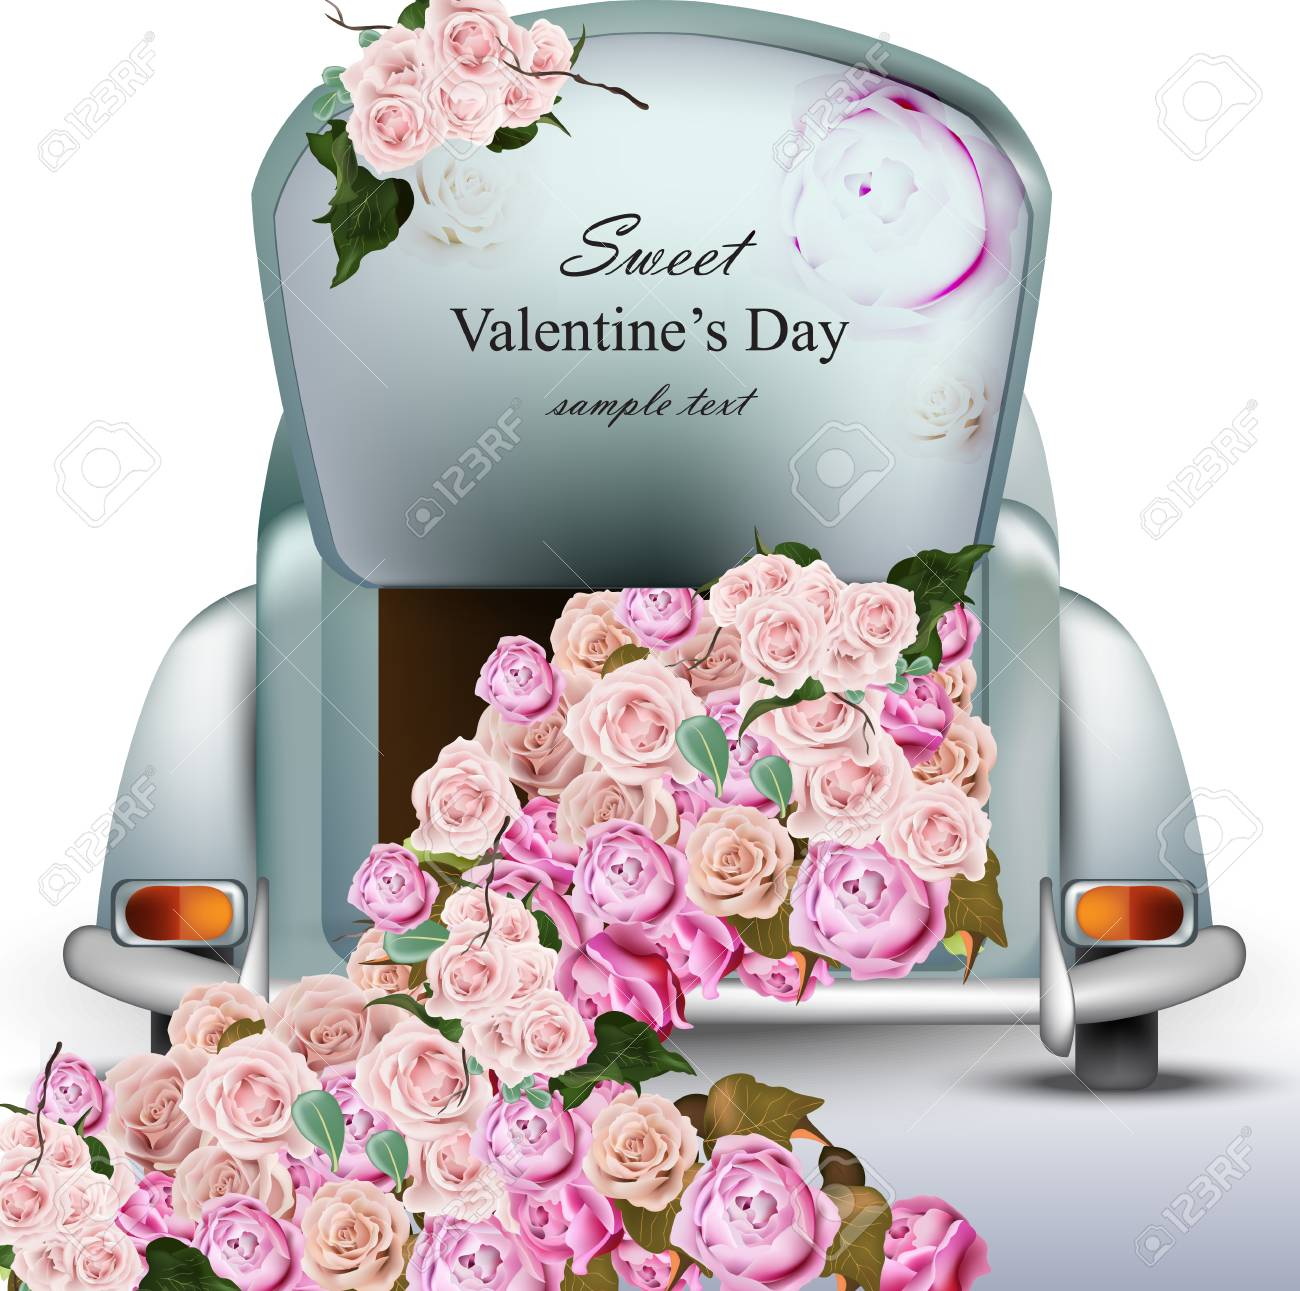 Vintage Retro Car With Rose Flowers. Valentines Day Card Vector ...